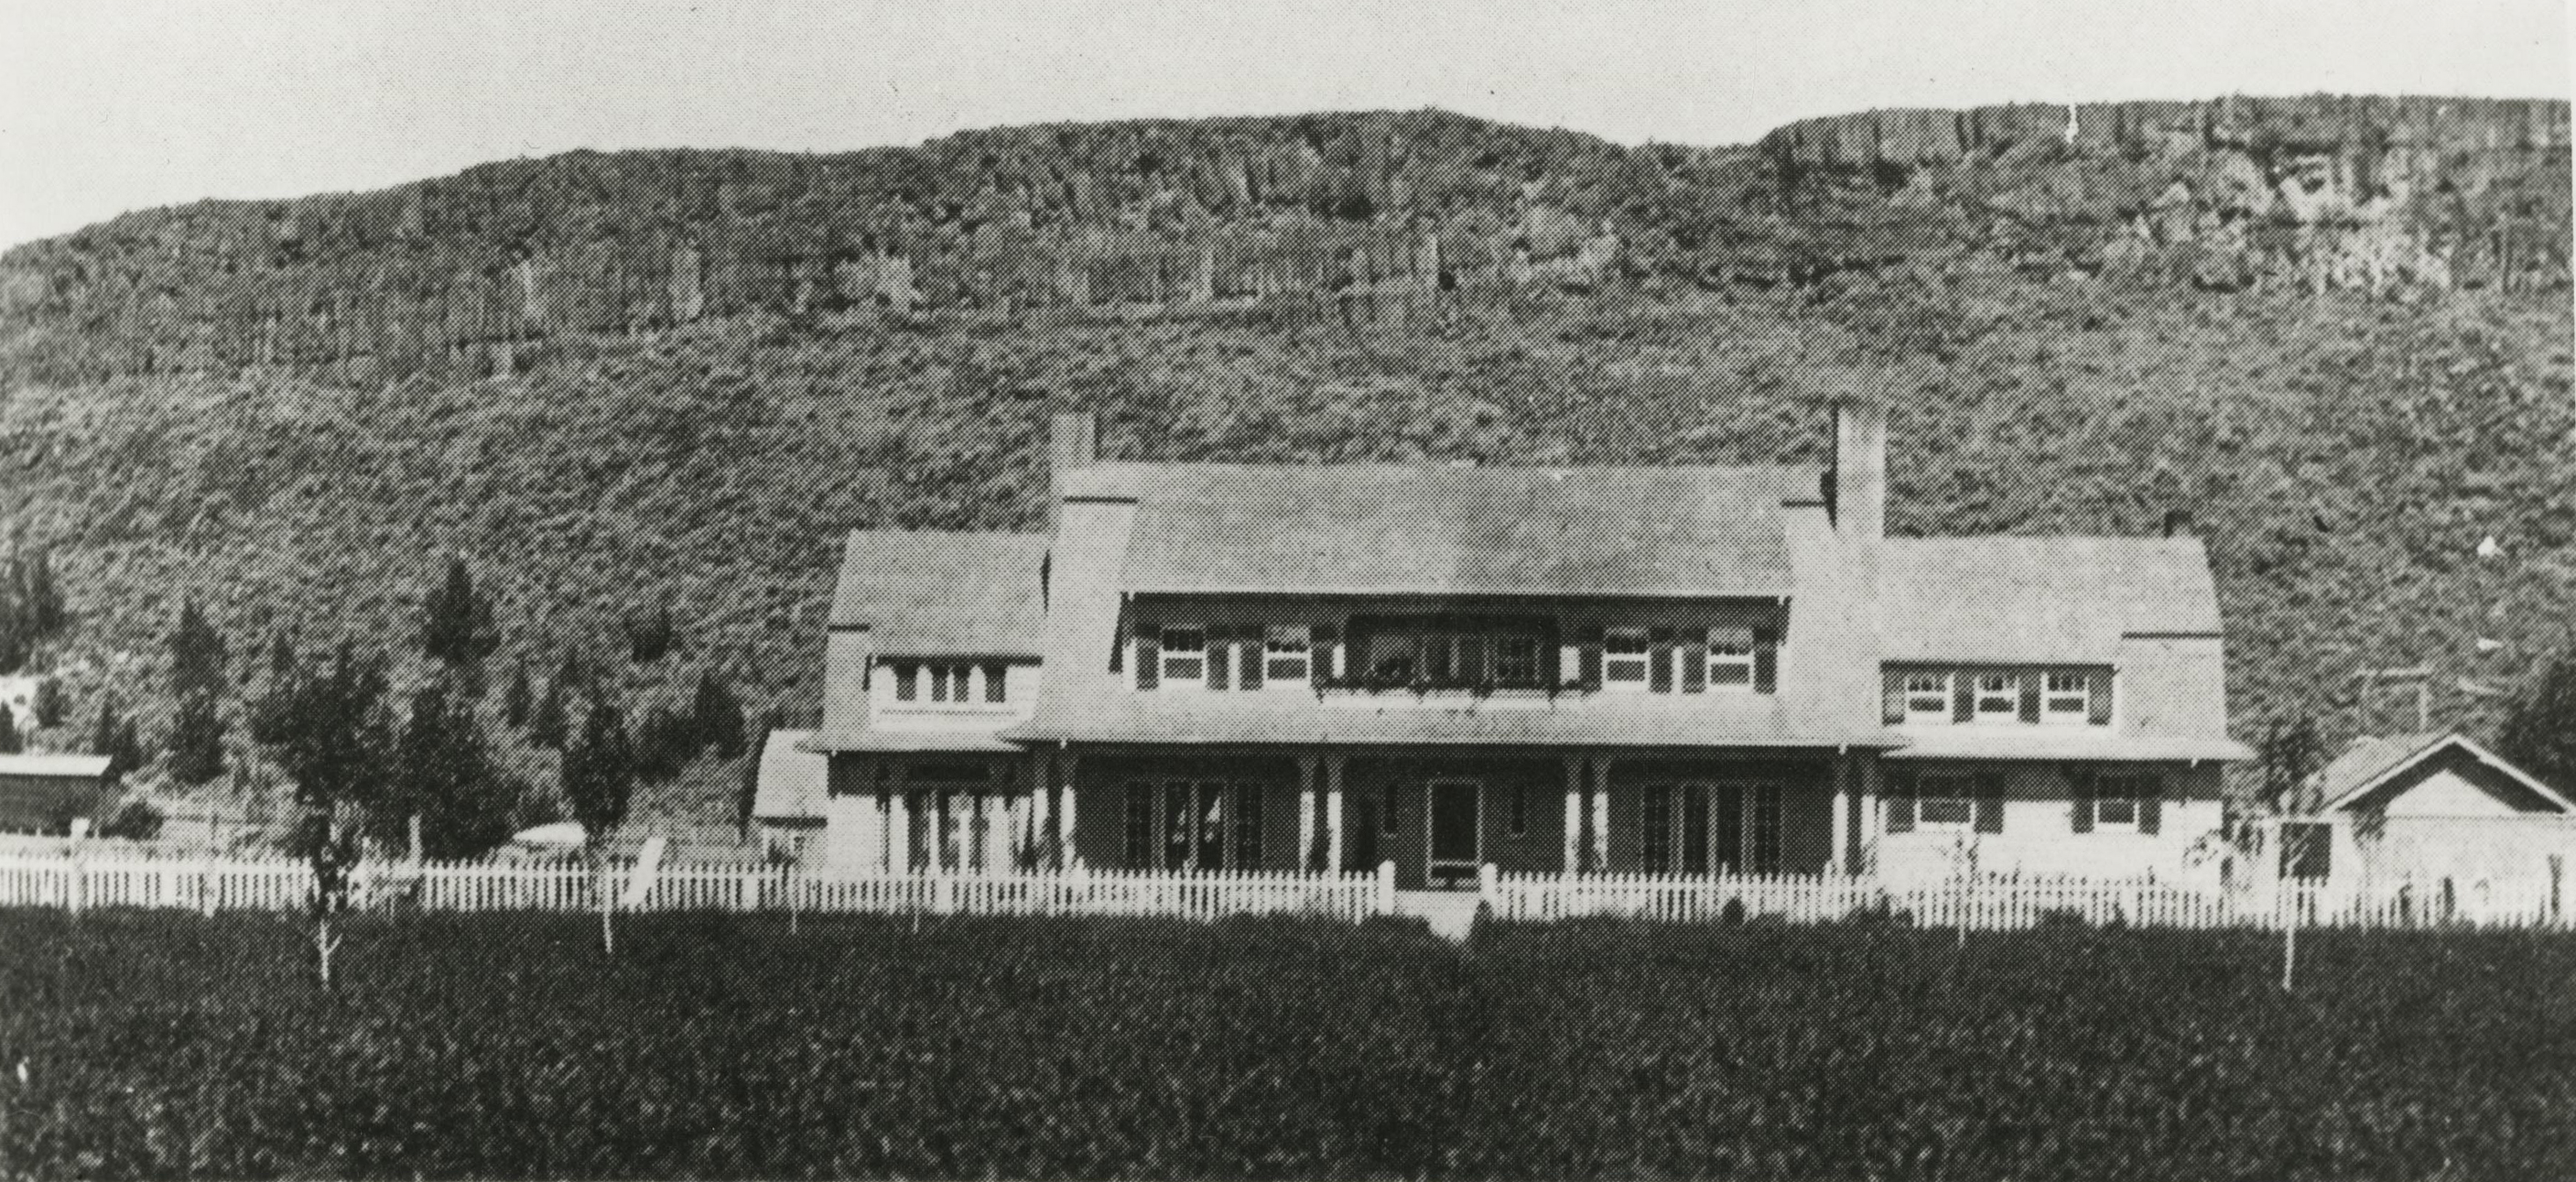 Westernwold, McCall family home in Central Oregon